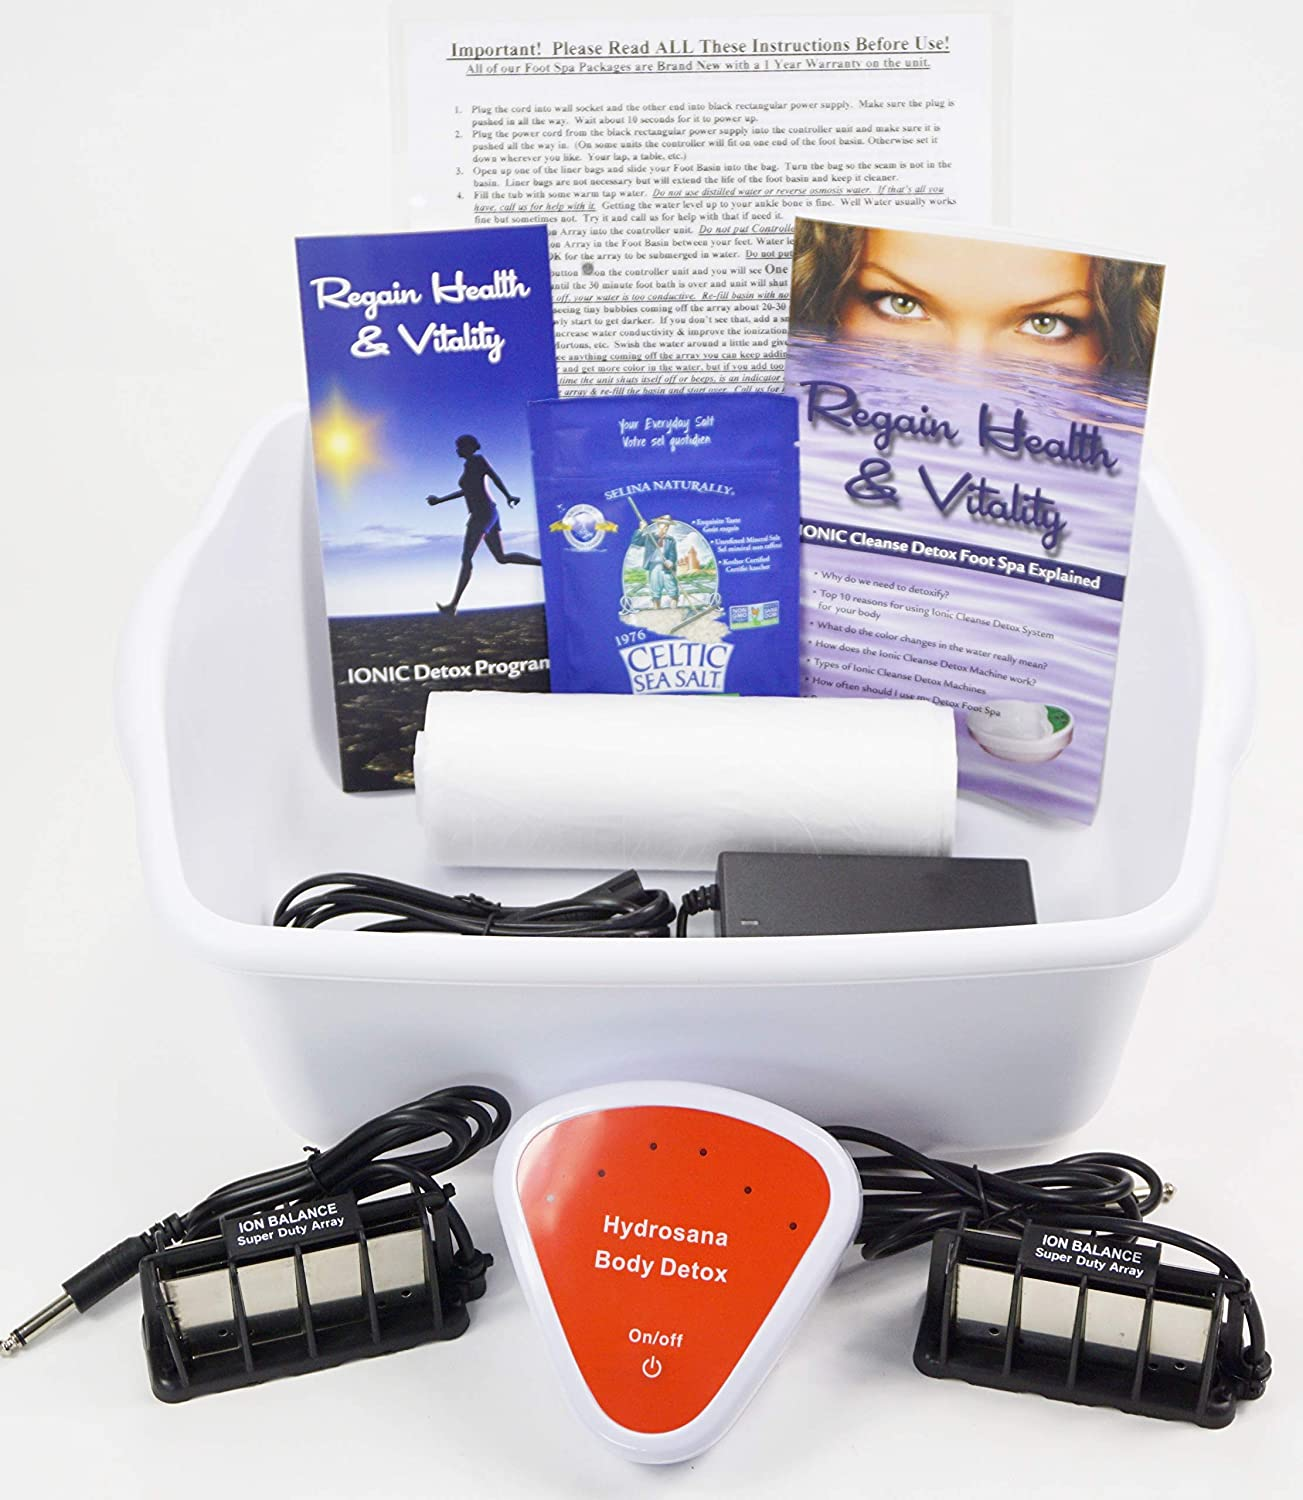 B00P8FWK7I Foot Spa - DR. DETOX - Ion Detox Ionic Foot Bath Spa Chi Cleanse Unit for Home Use. Comes with Free Extras! 1 Year Warranty 81uaY823FkL.SL1500_